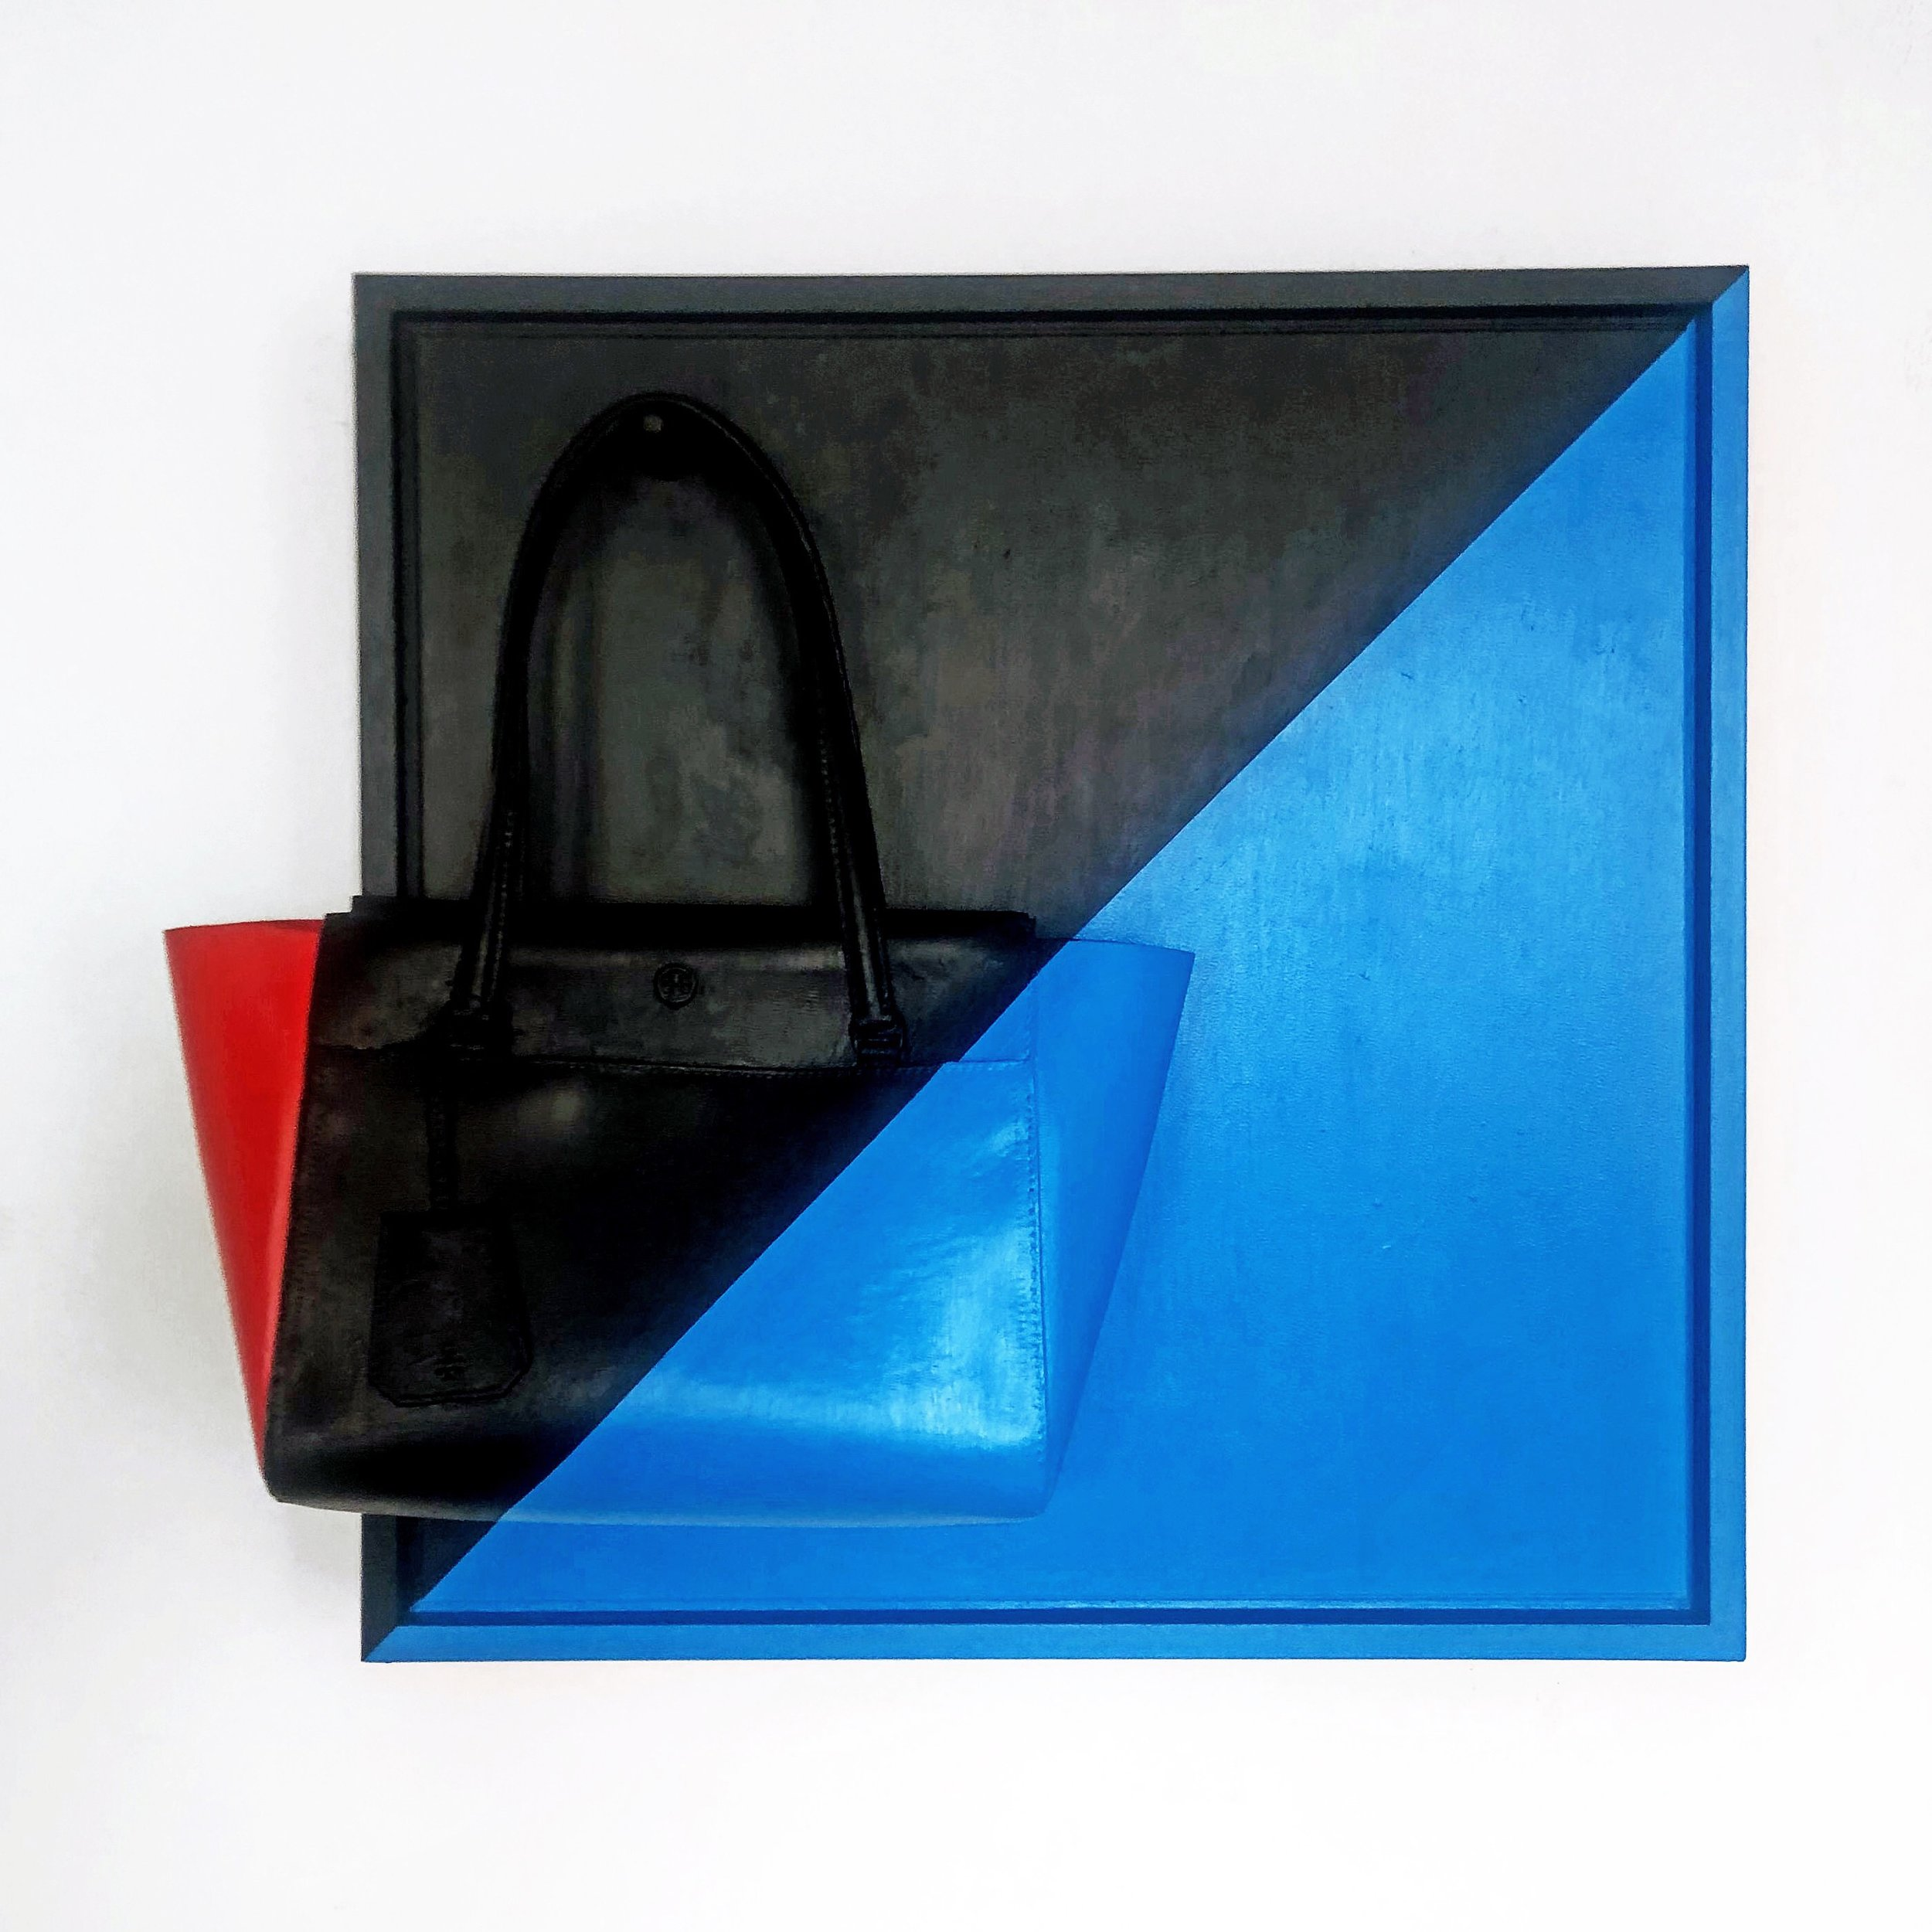 "Interlock object"" (Target no.102),  24X9 ½ X27, Tory Burch casted handbag and acrylic on wood frame, 2019"